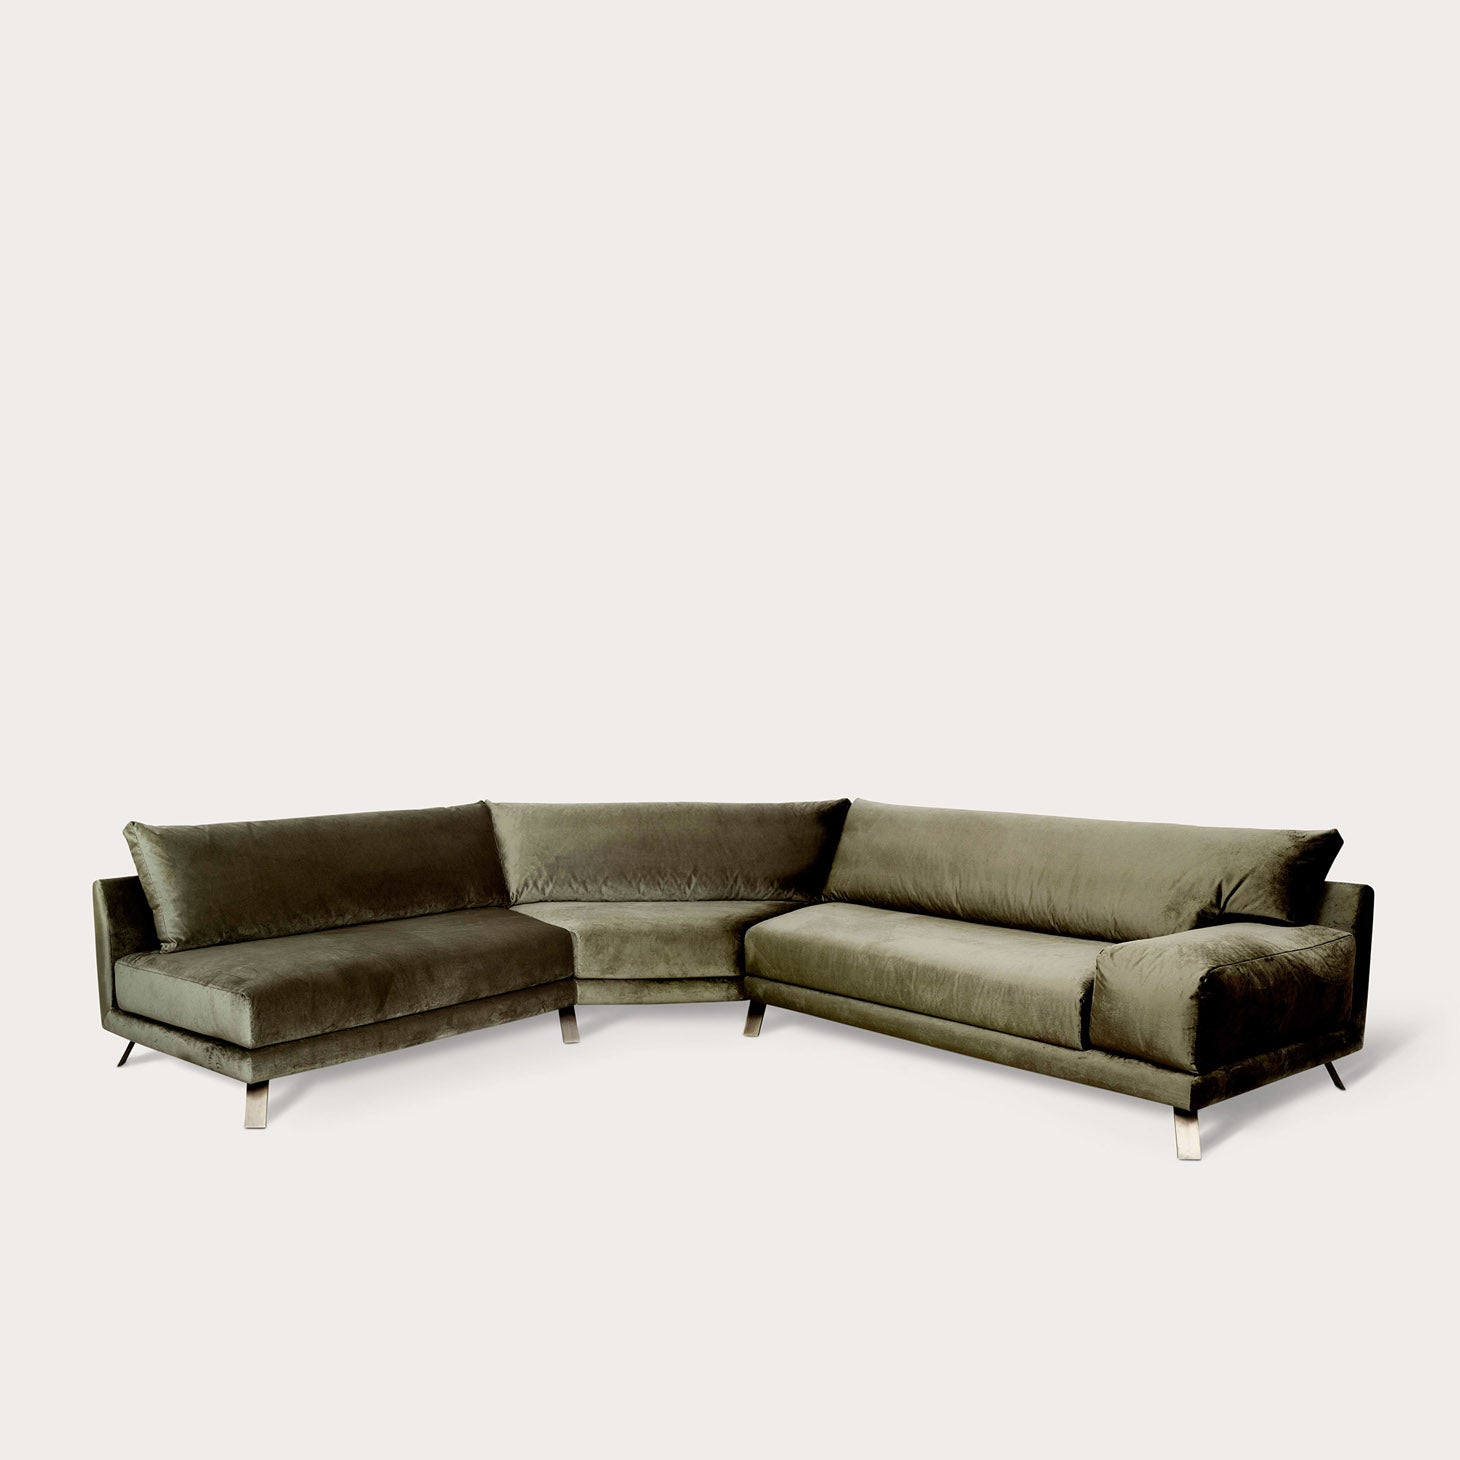 IAN Panoramic Seating Christophe Delcourt Designer Furniture Sku: 008-240-10104